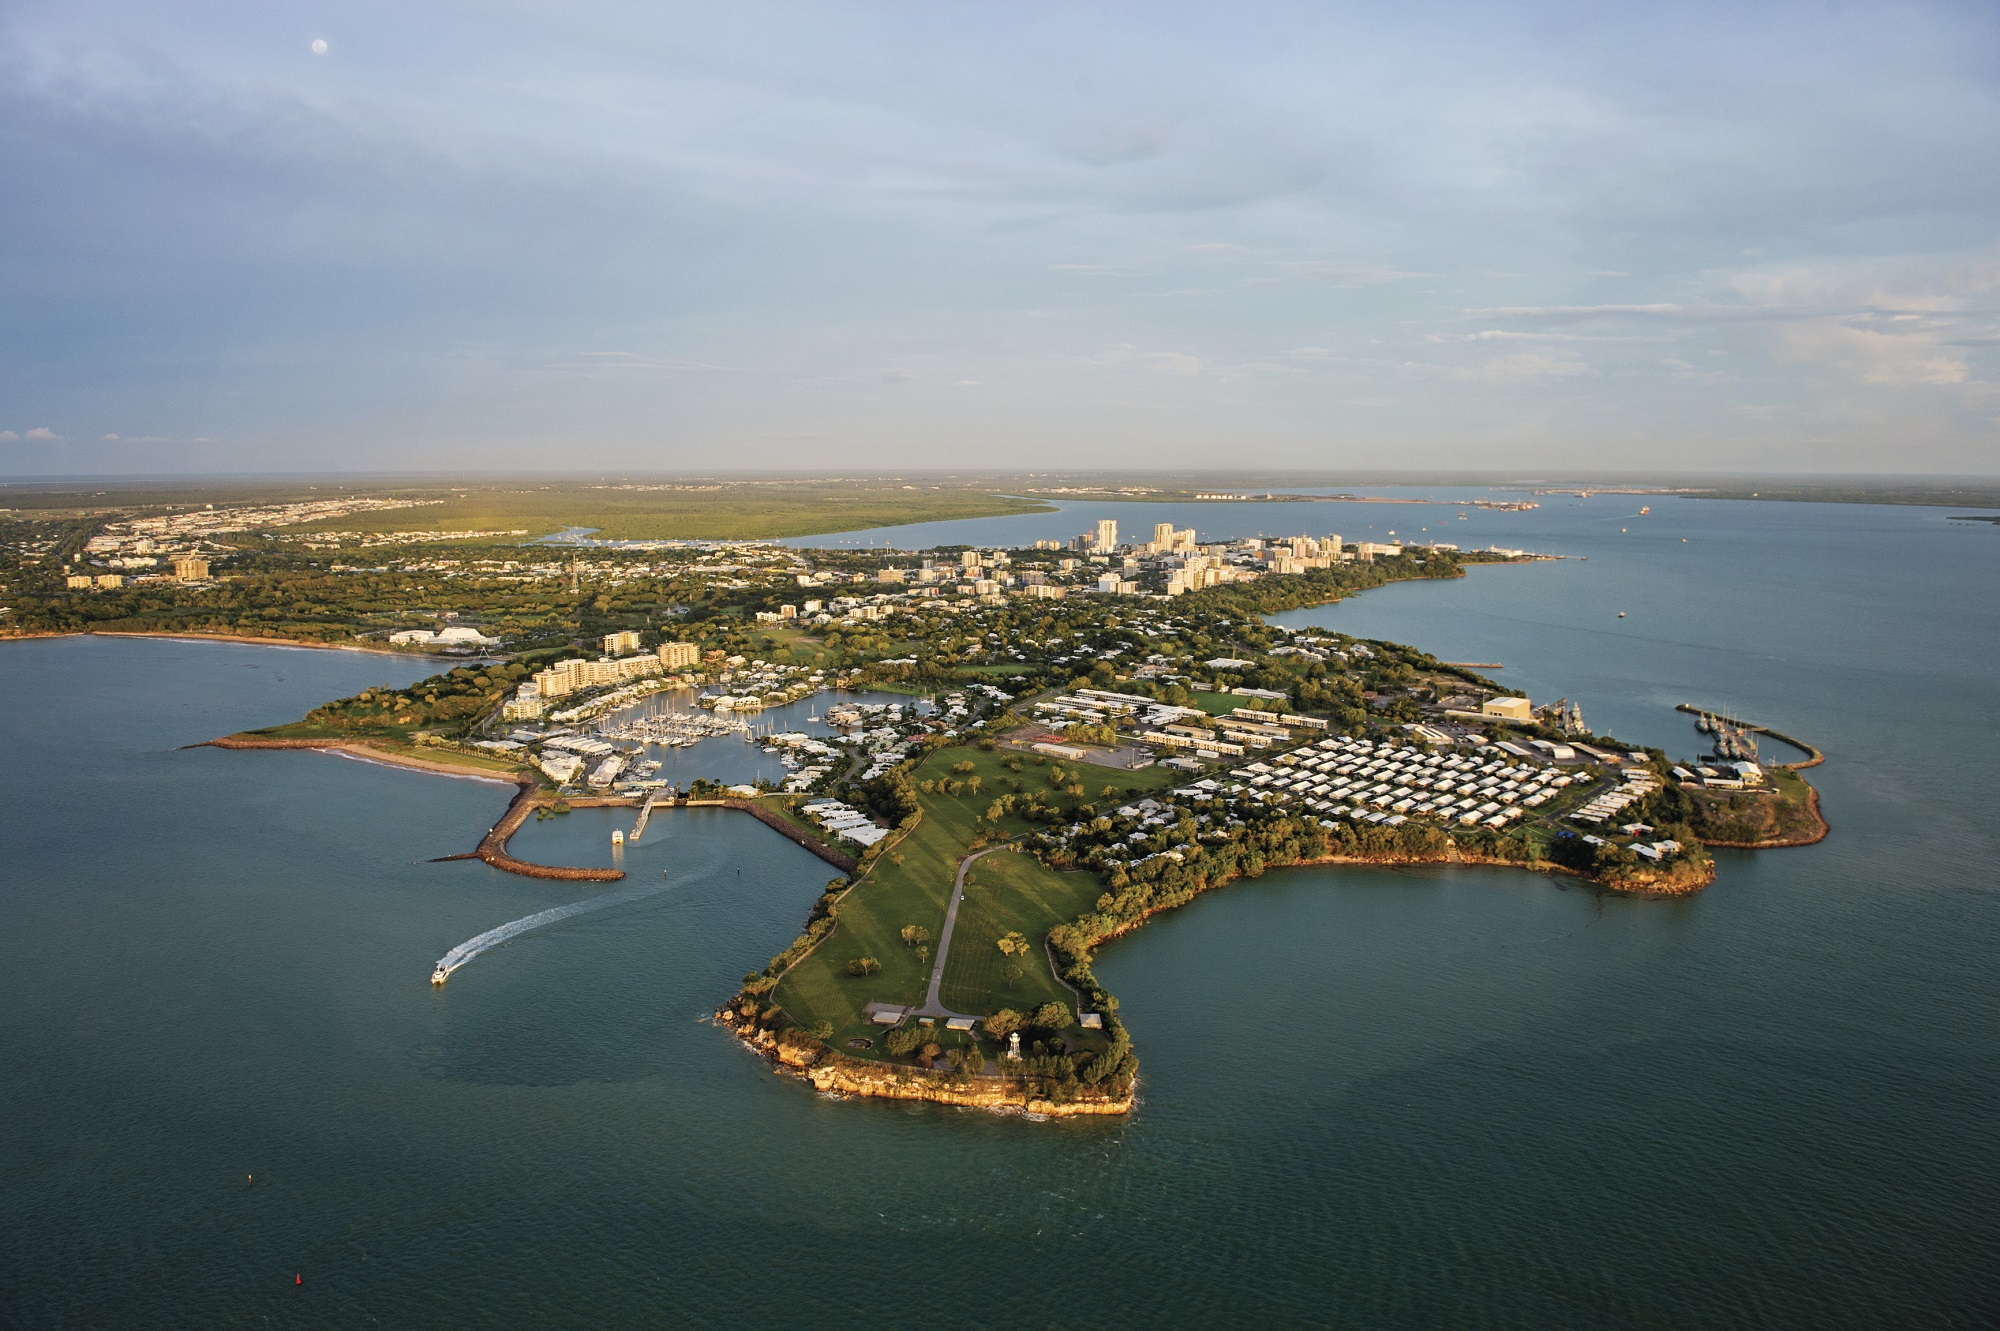 Darwin City Tour and Surrounds $55 | Darwin Sightseeing Bus Tour